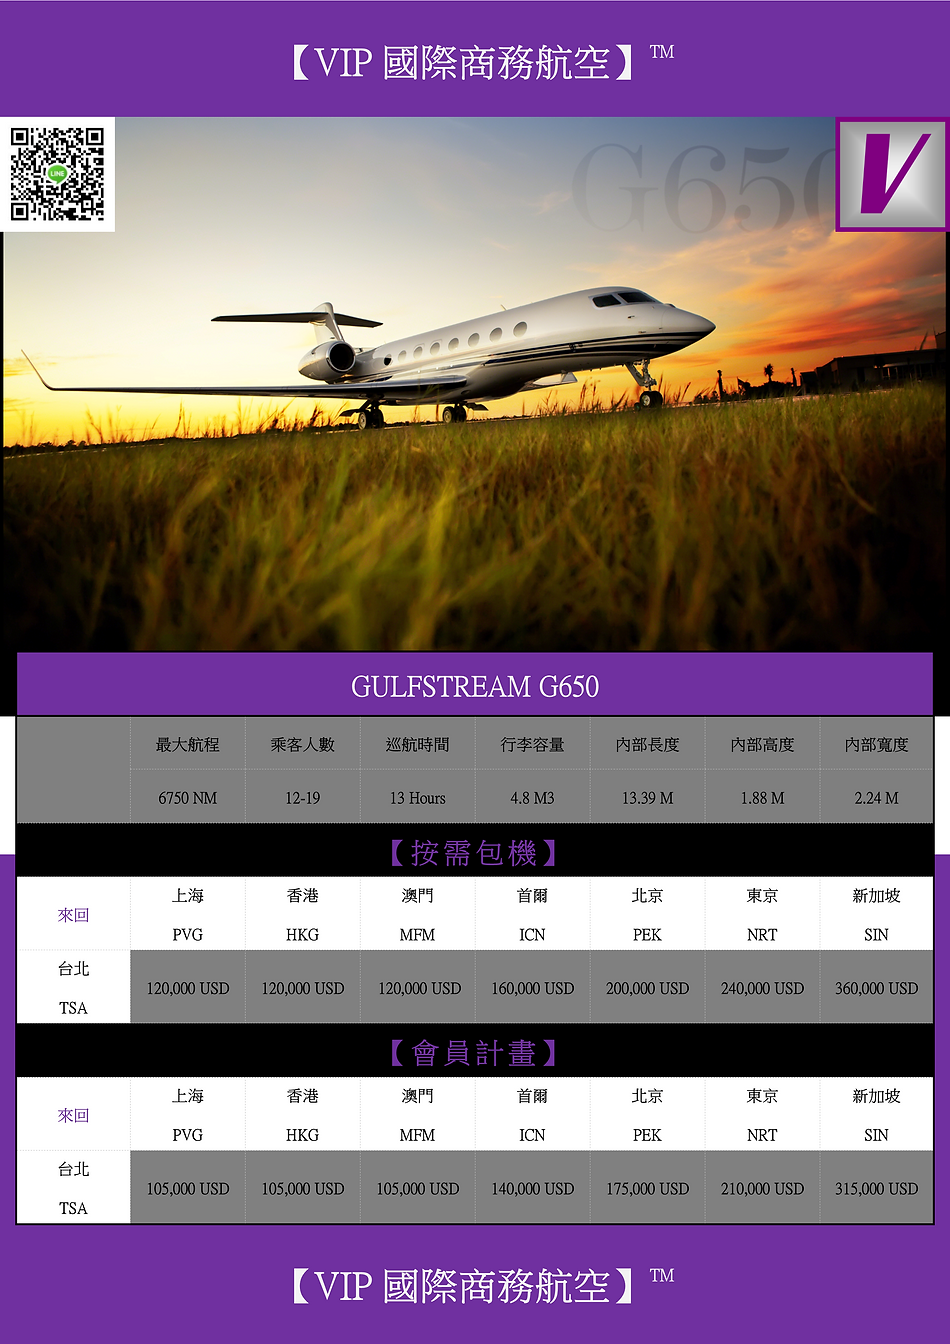 VIP GLOBAL GULFSTREAM G650 DM V2.png